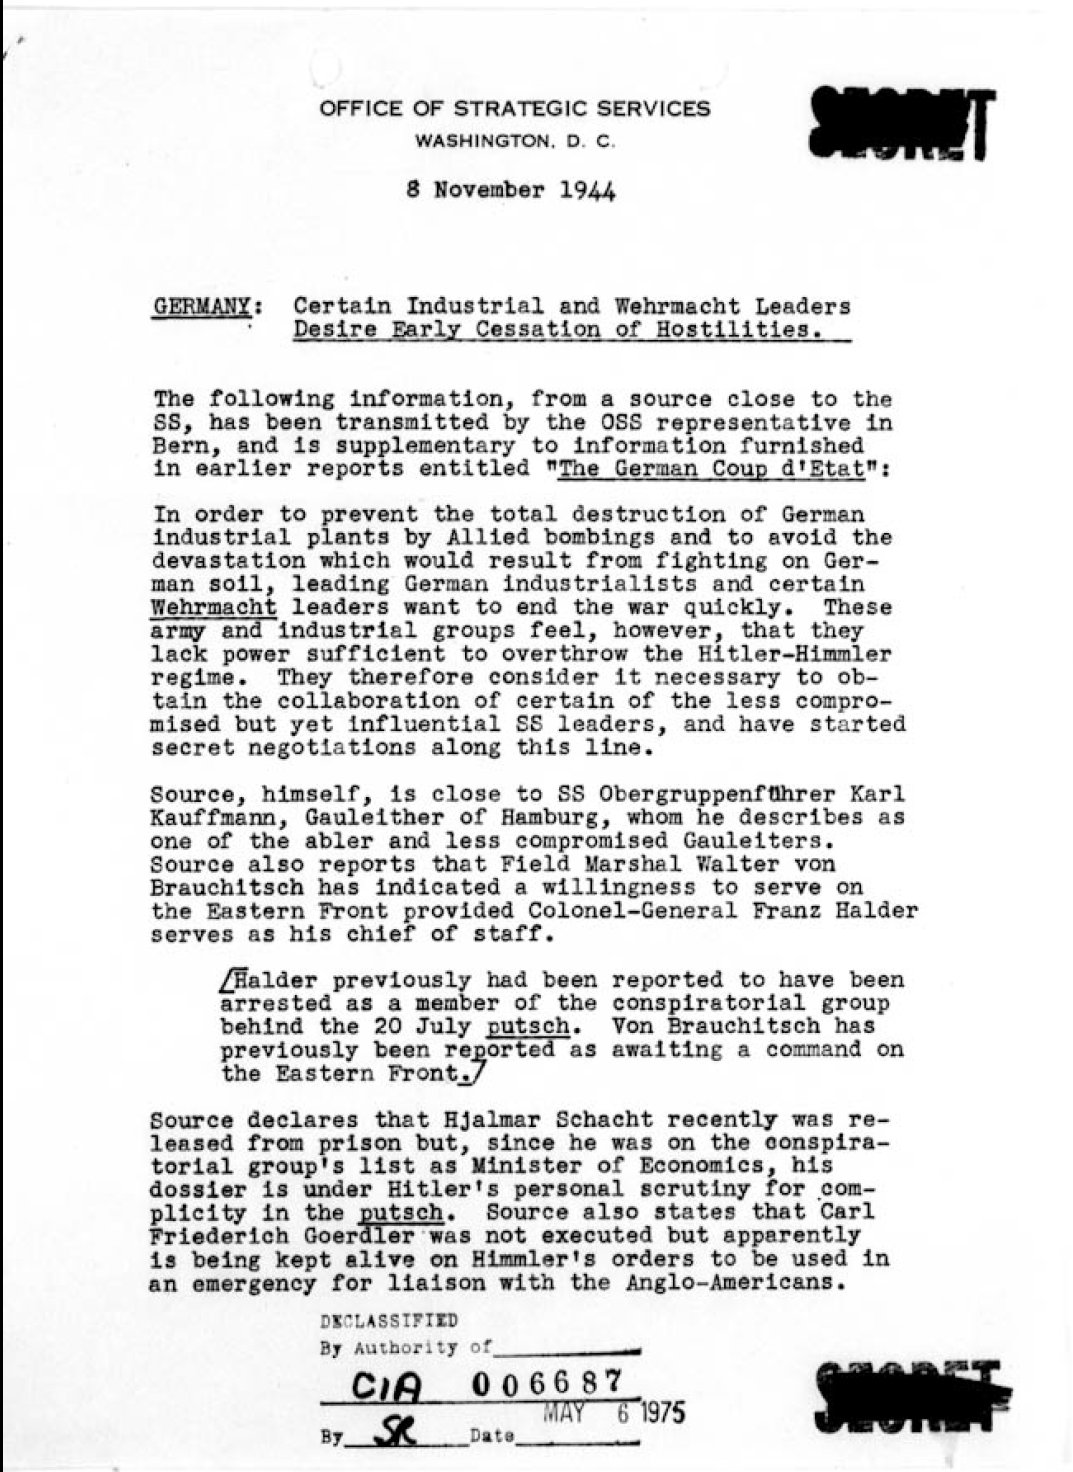 World-War-II-OSS-Numbered-Bulletin-November-06-1944